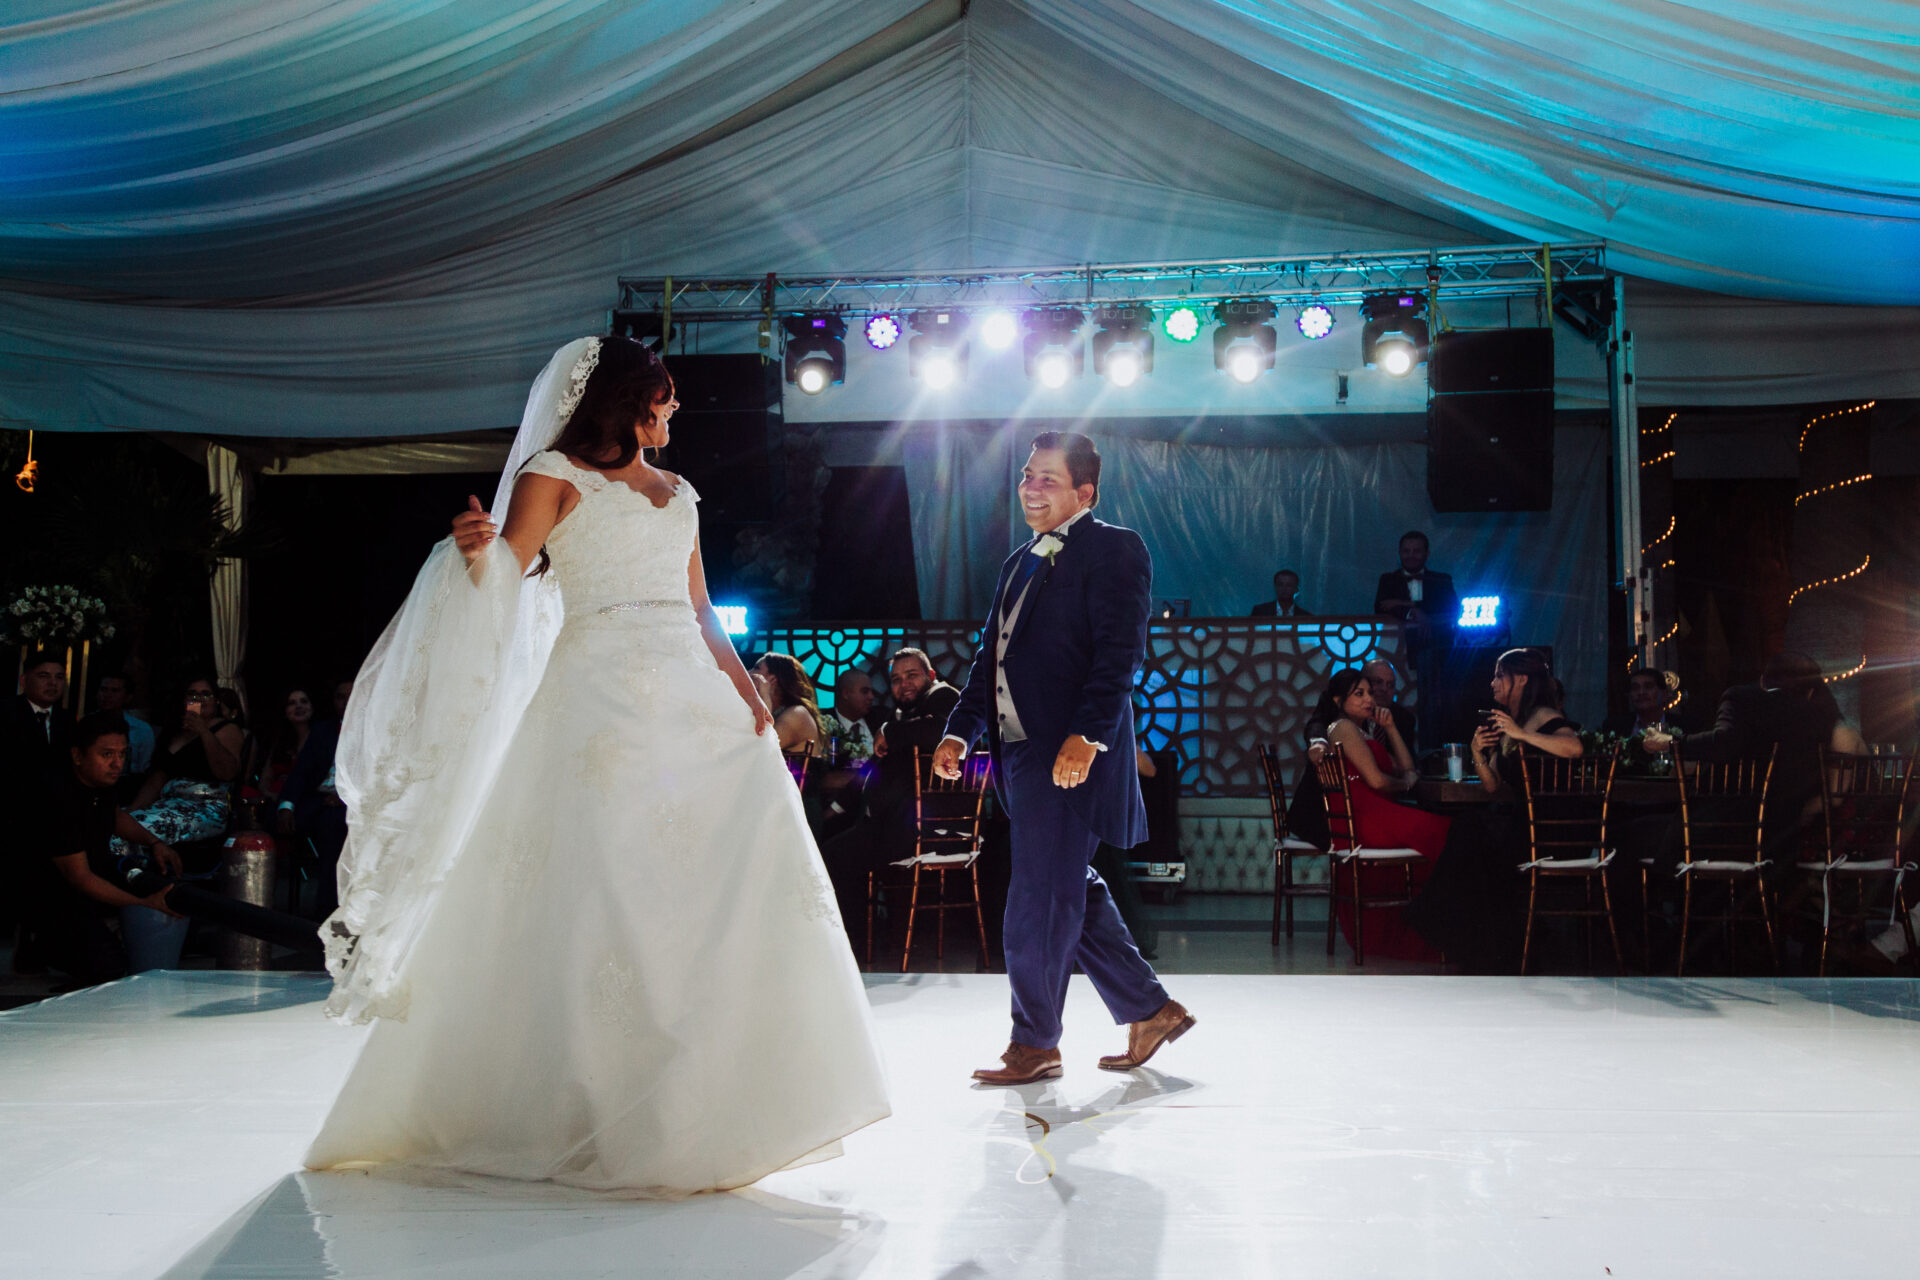 javier_noriega_fotografo_bodas_torreon_coahuila_zacatecas_wedding_photographer54a